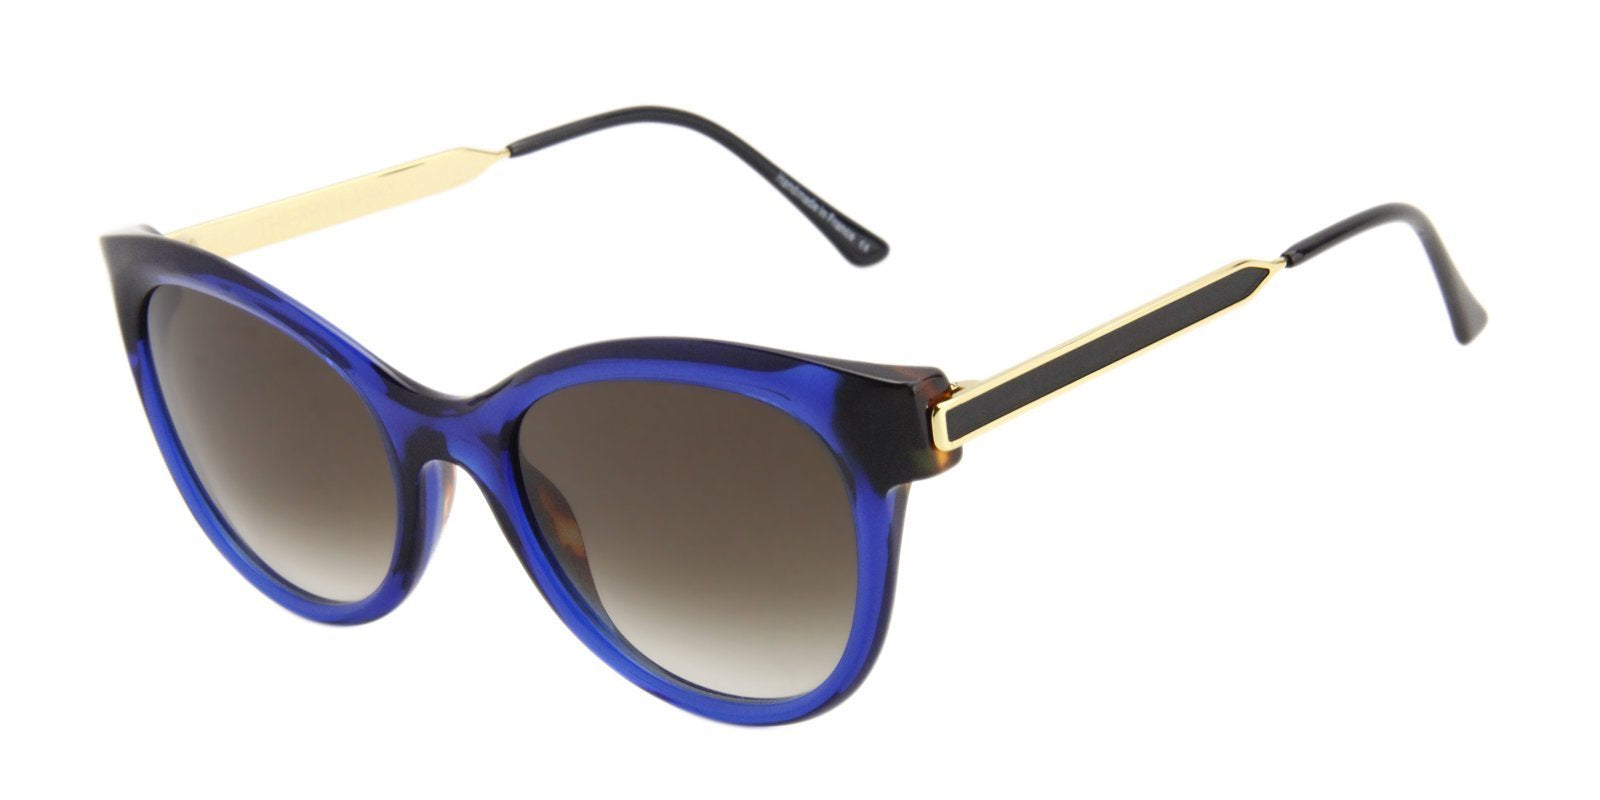 Thierry Lasry - Flirty Blue Oval Women Sunglasses - 53mm-Sunglasses-Designer Eyes